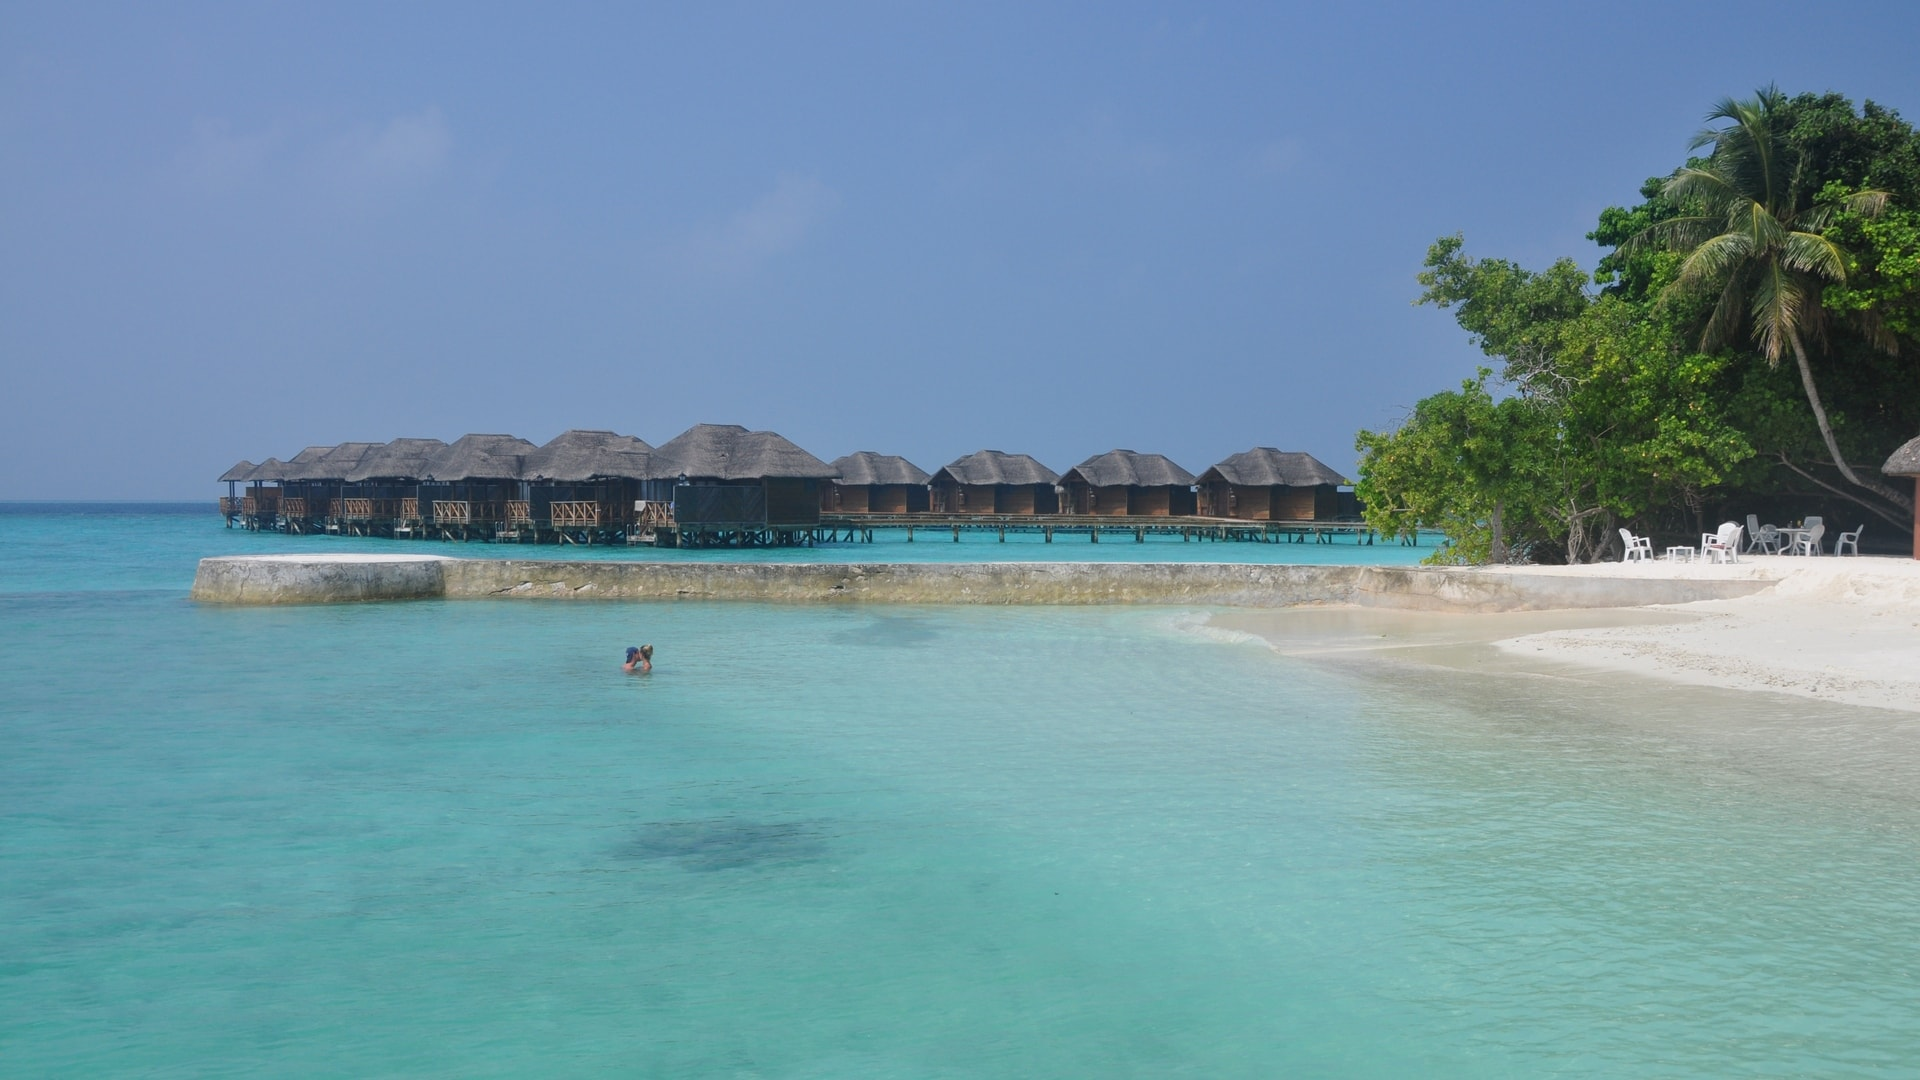 Vacation in the Maldives